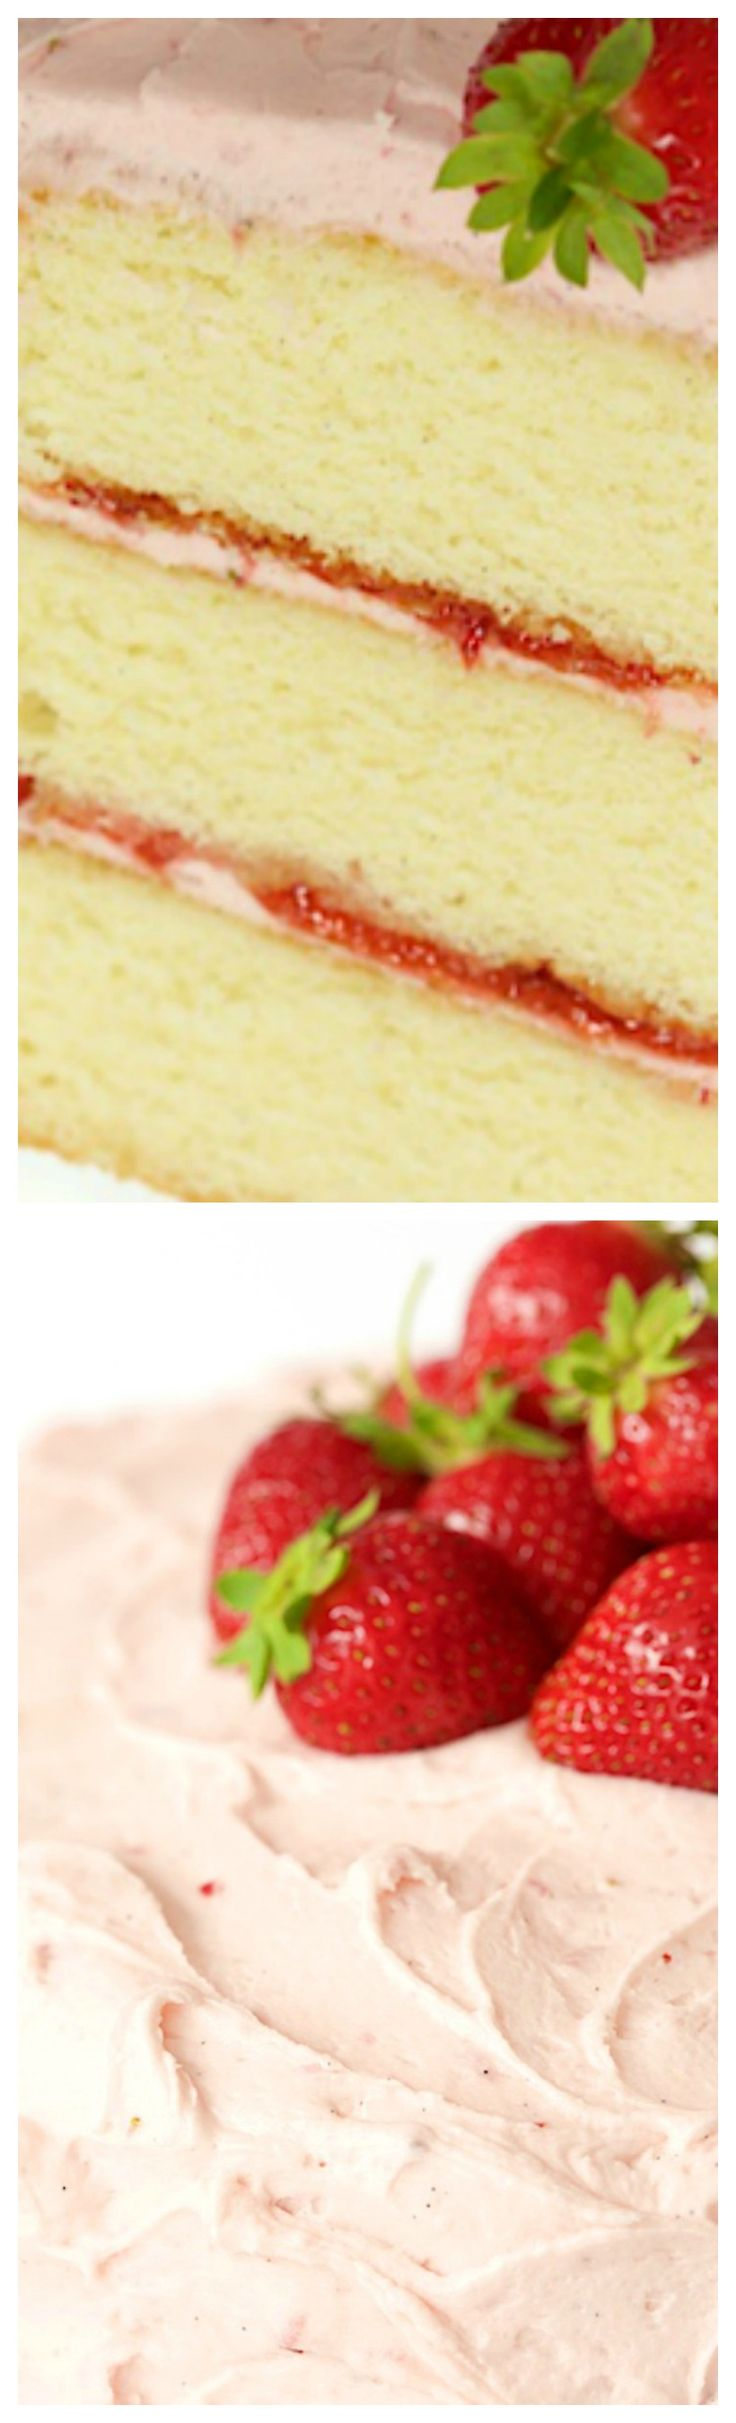 Strawberry Layer Cake ~ Layers of tender, moist yellow cake sandwiched between a double dose of strawberries - fresh strawberry buttercream and strawberry jam.